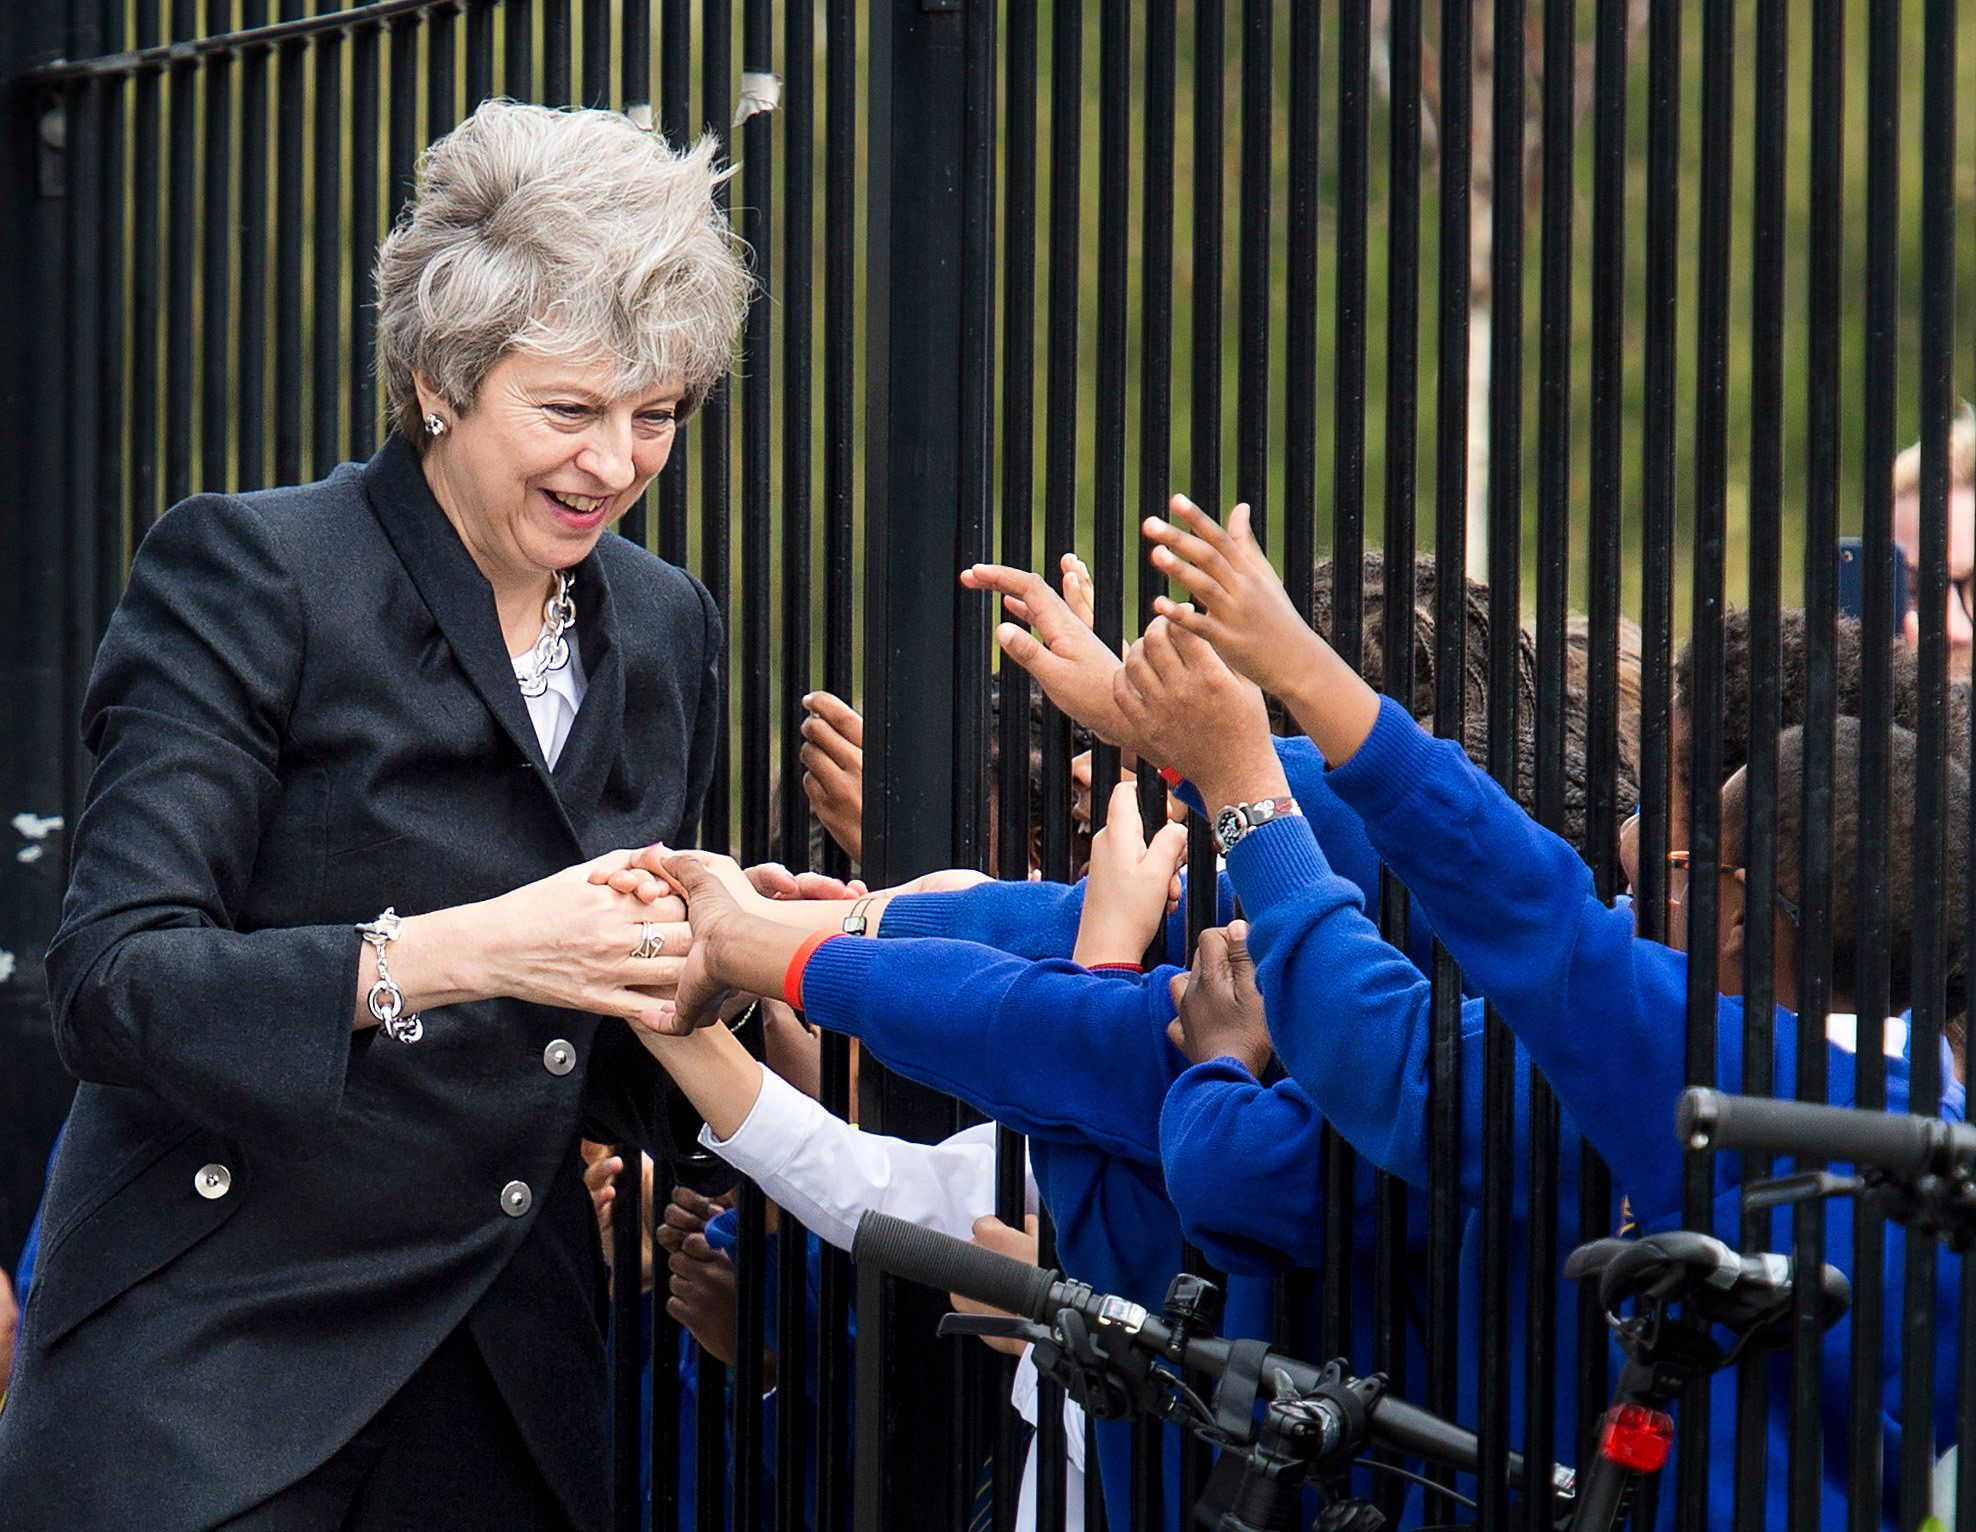 United Kingdom must take action on racial disparity, says Theresa May